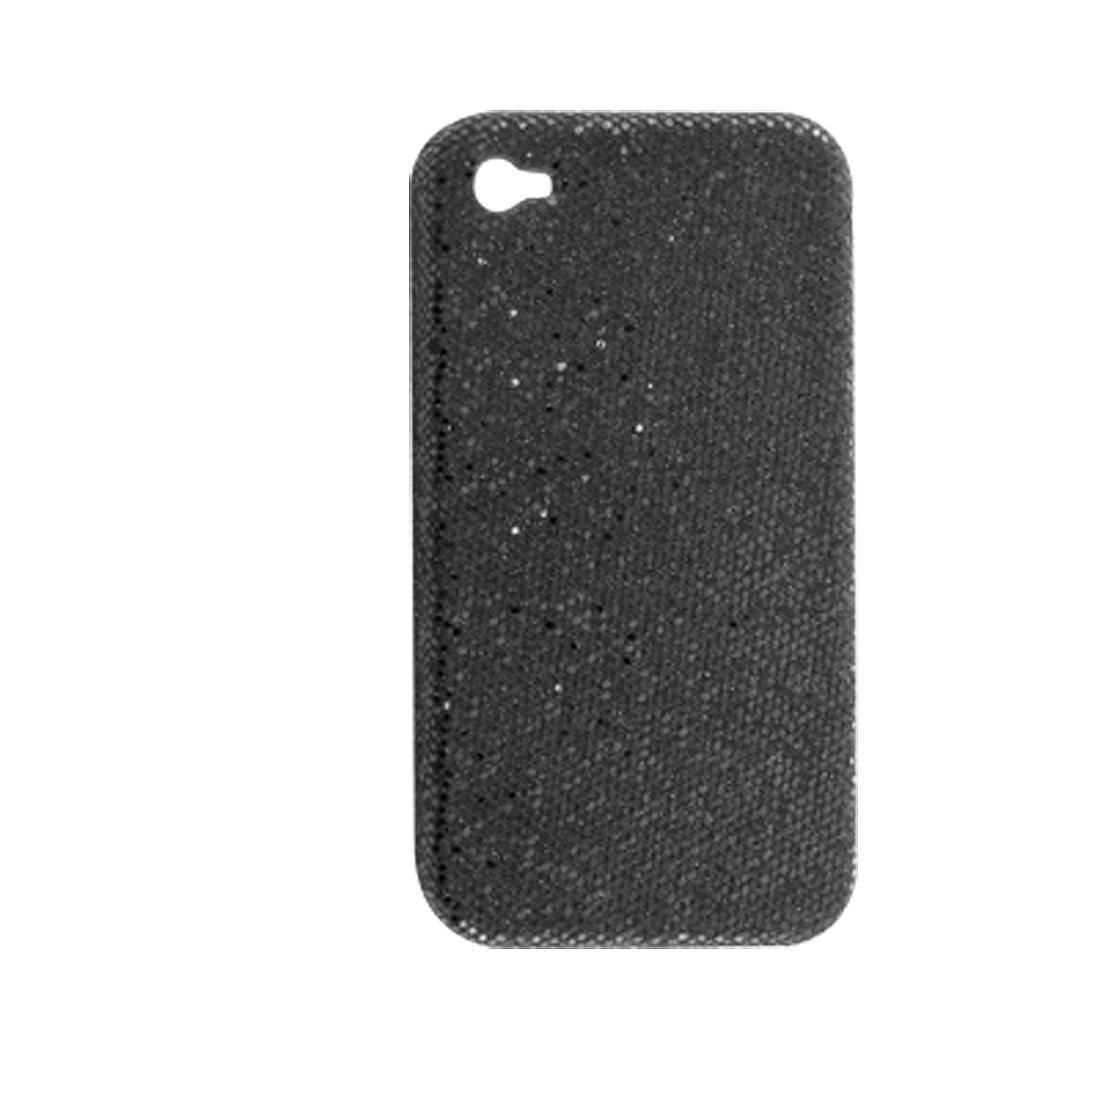 Hard Plastic Black Glittery Protective Cover for iPhone 4